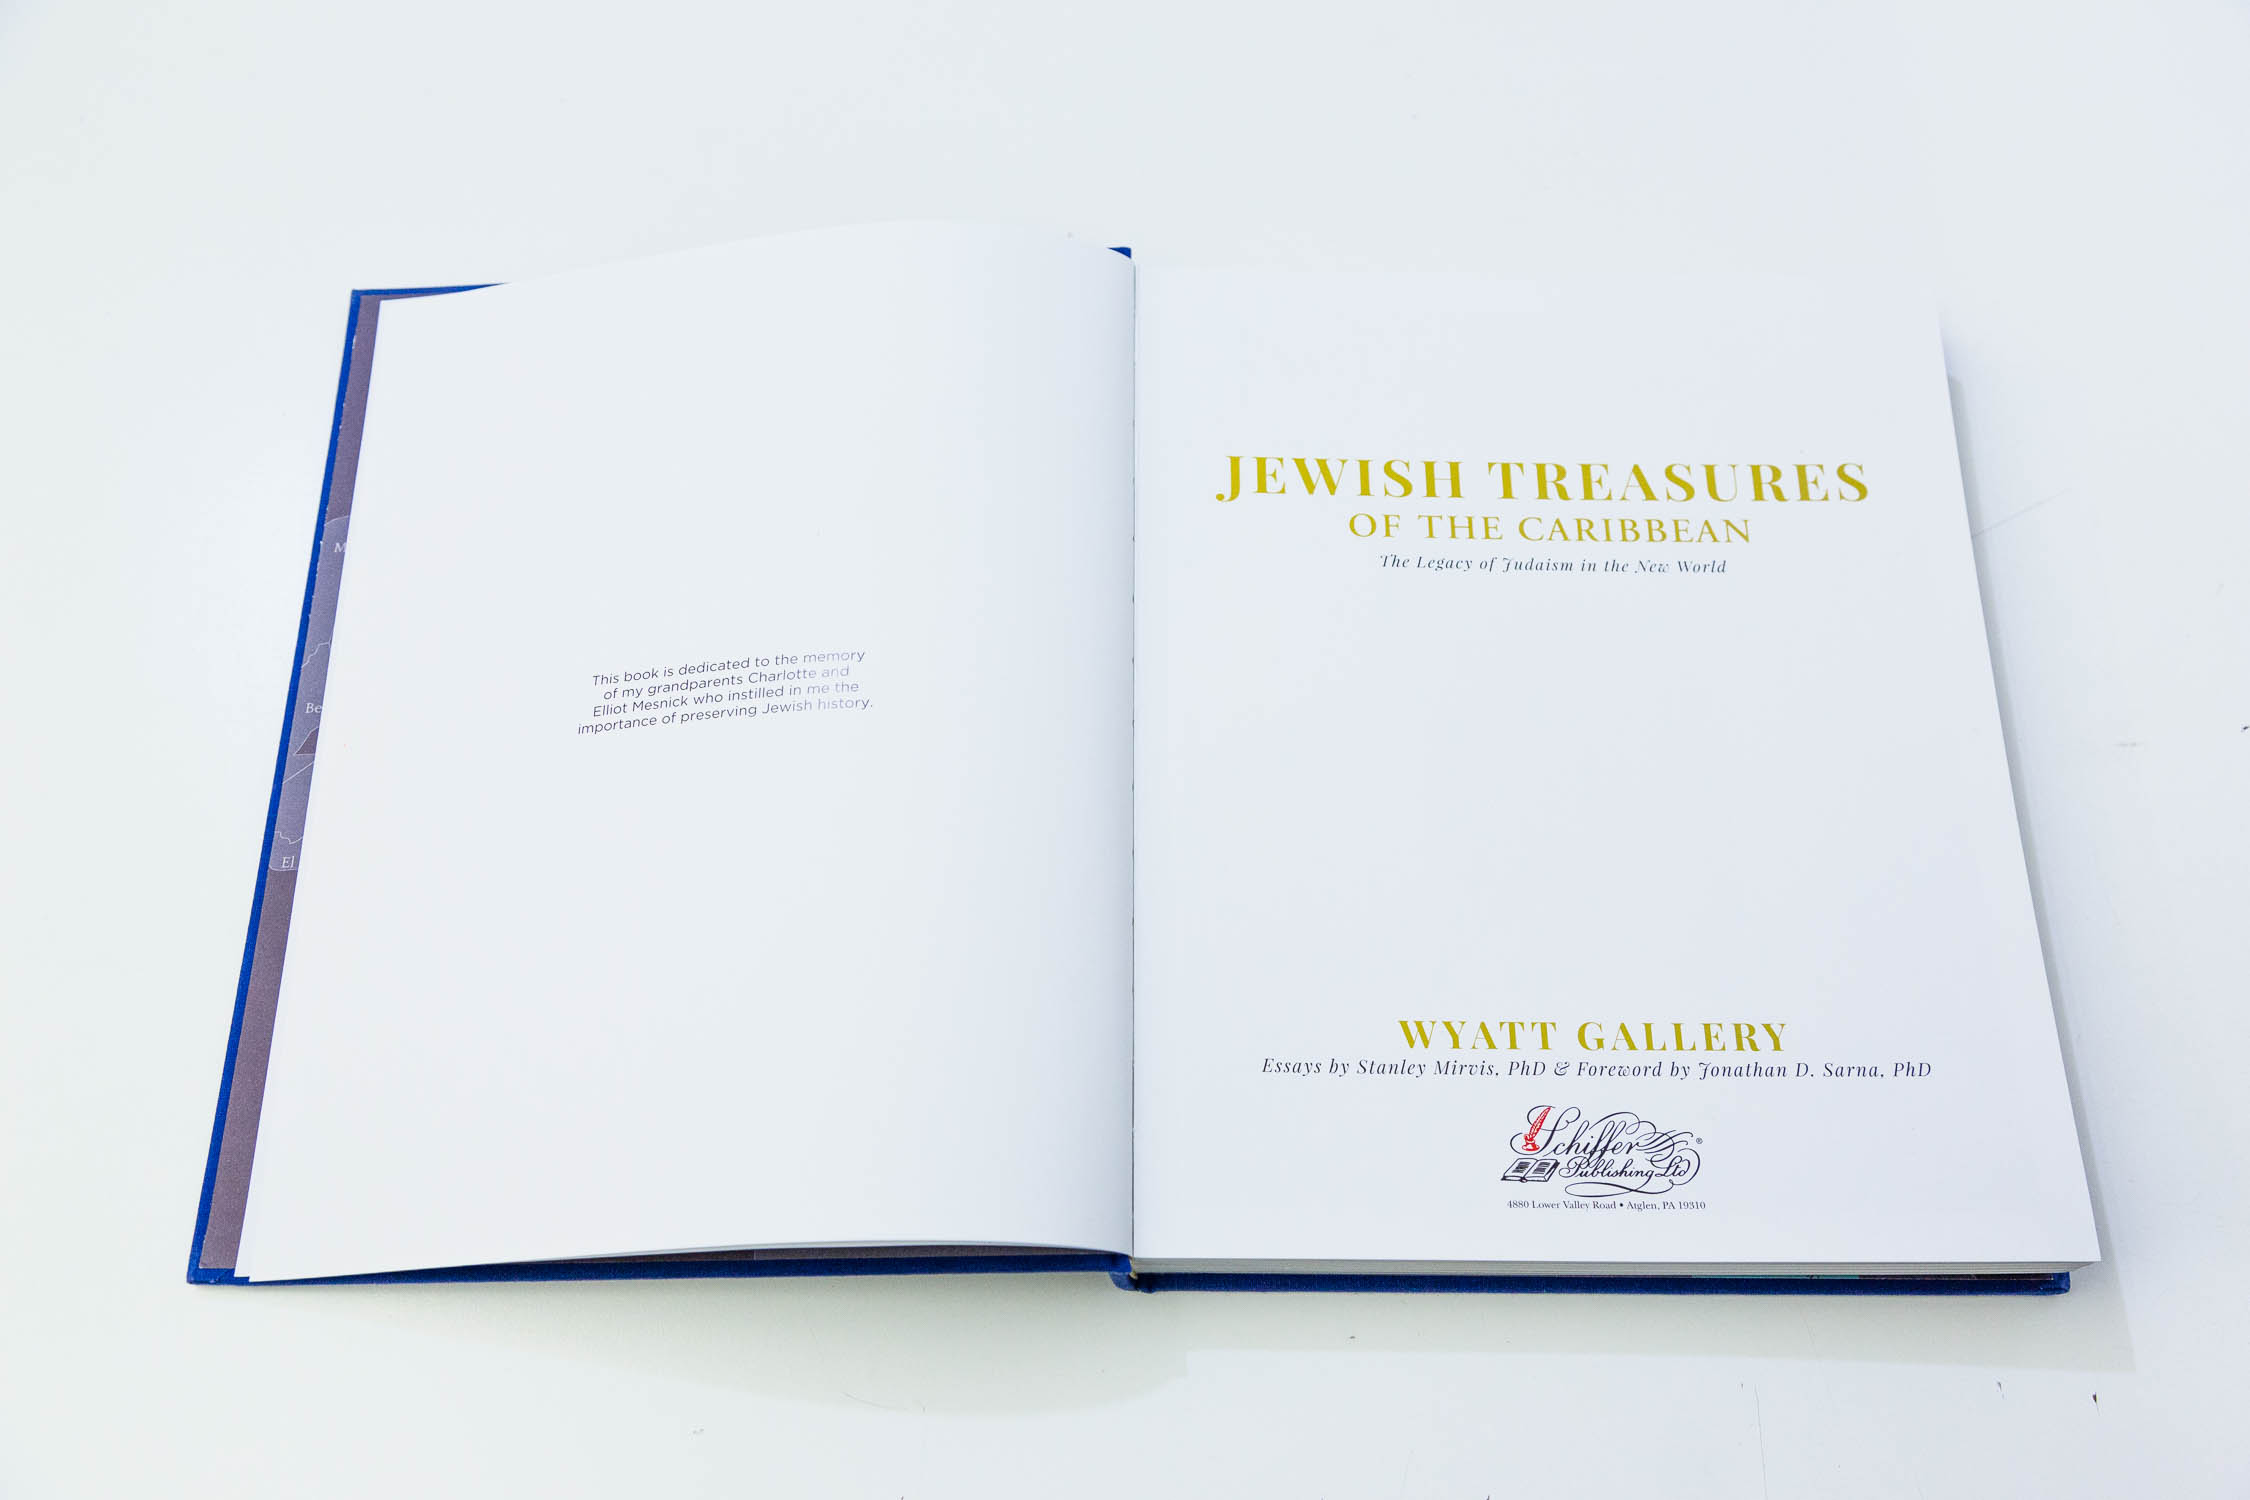 JEWISH-TREASURES-BOOK_005